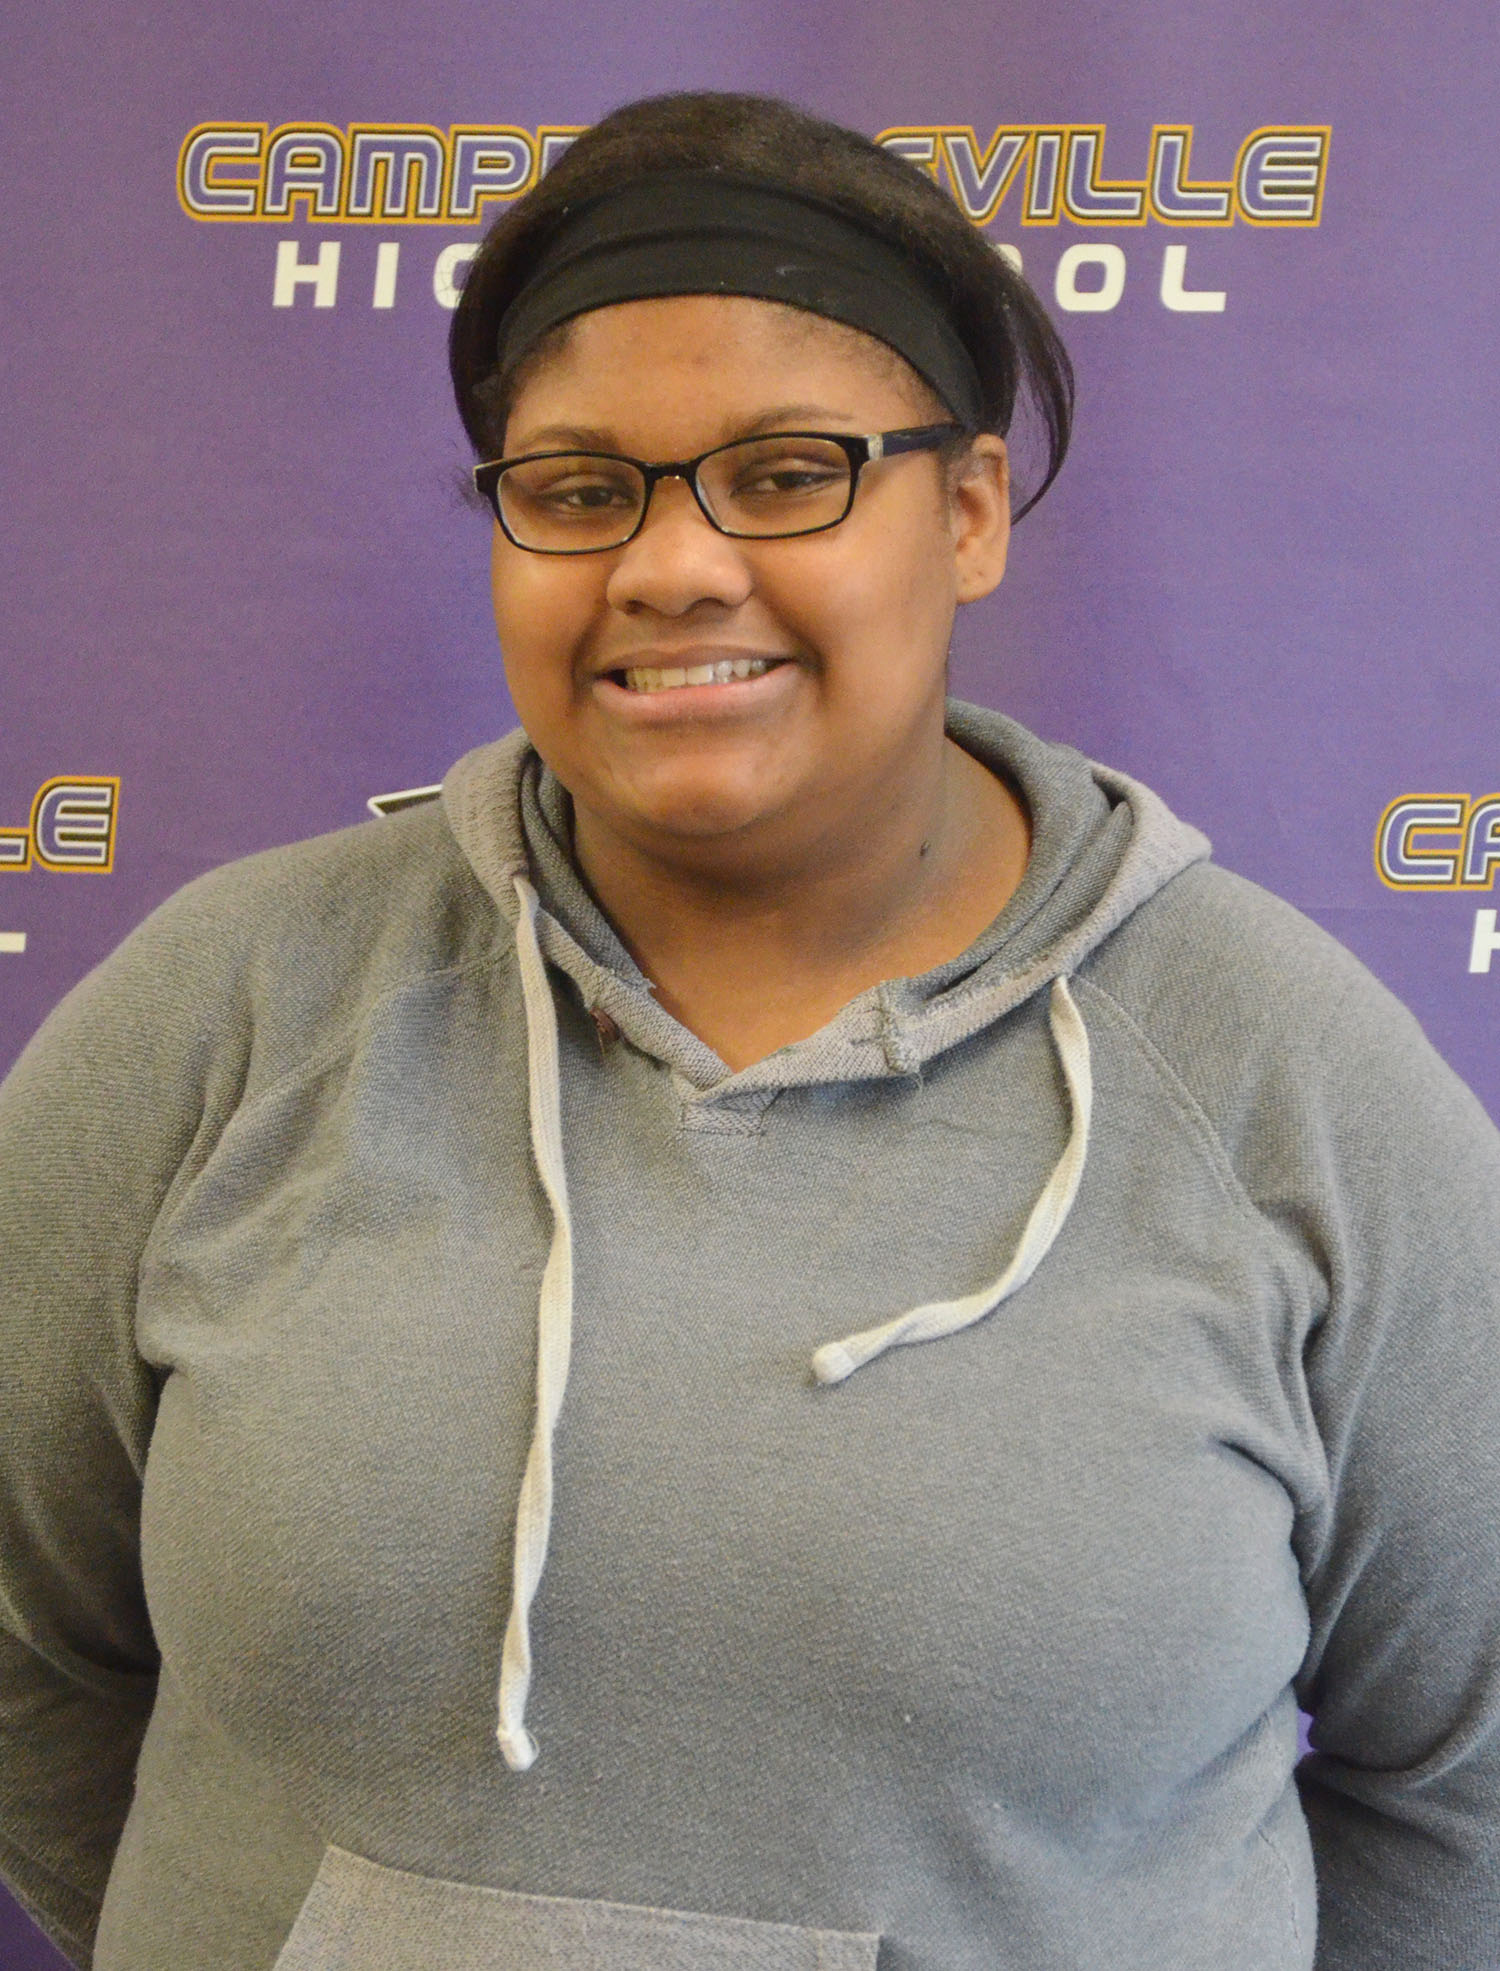 Campbellsville High School freshman Jakyia Mitchell has been chosen to participate in a future medical leaders program in Massachusetts.